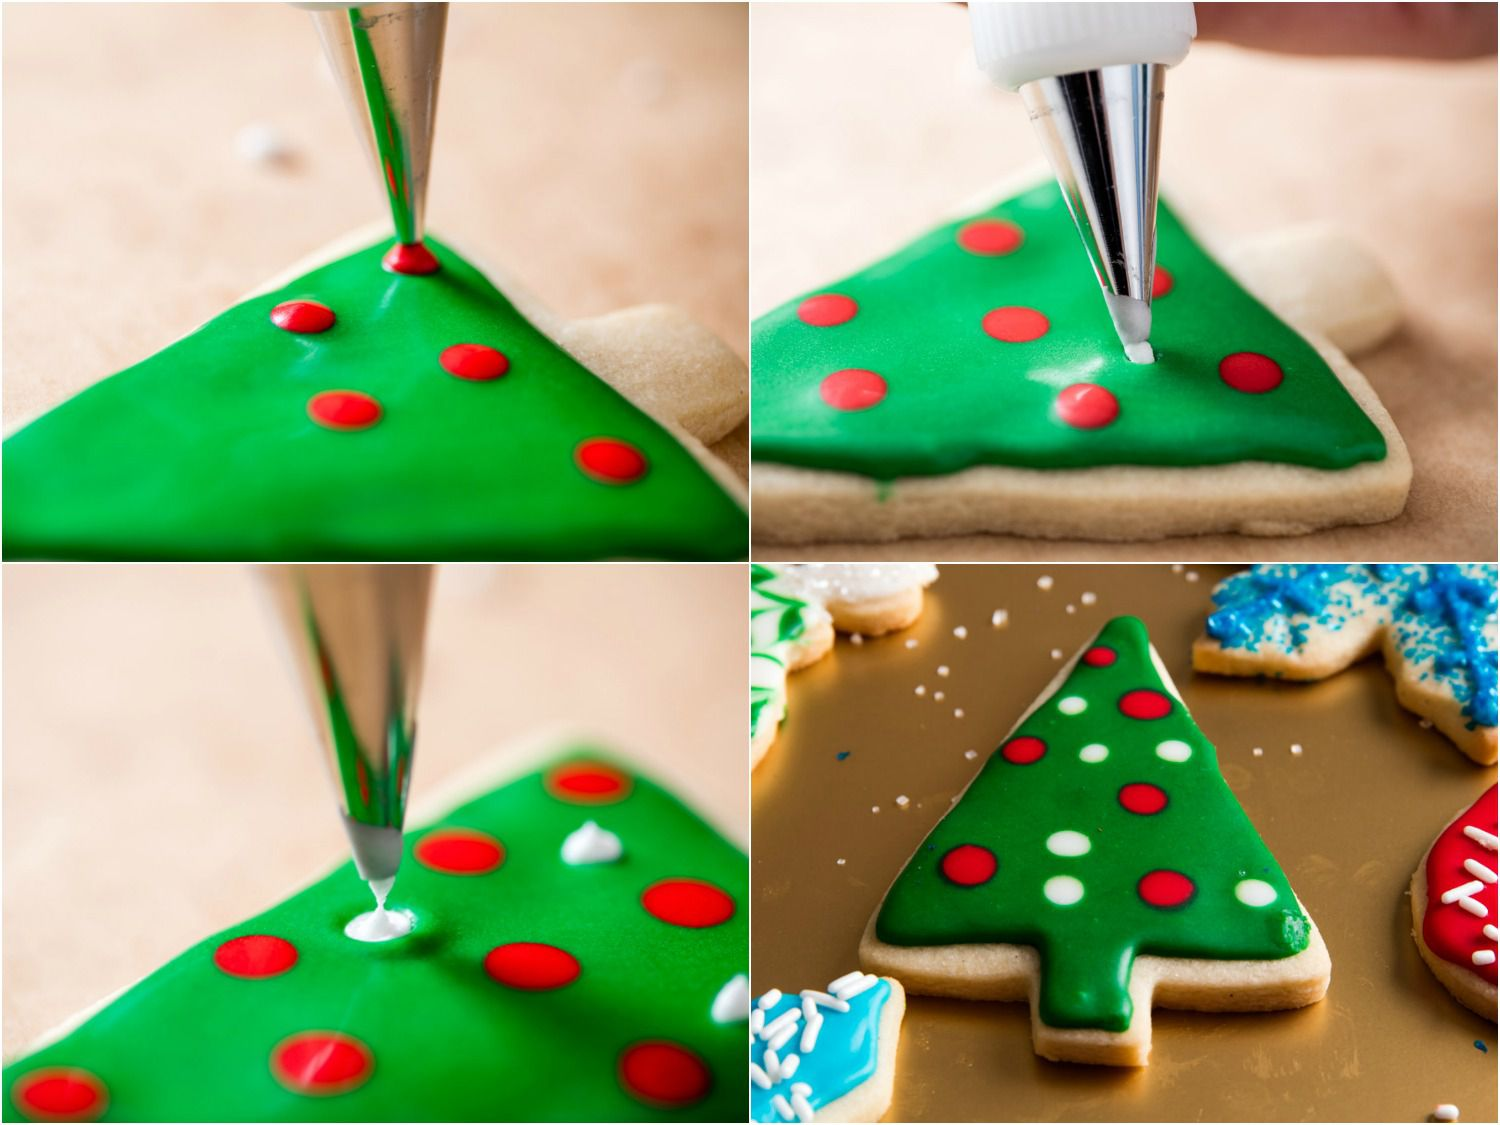 20161207-holiday-cookie-decorating-icing-sugar-cookies-vicky-wasik-dots-collage.jpg